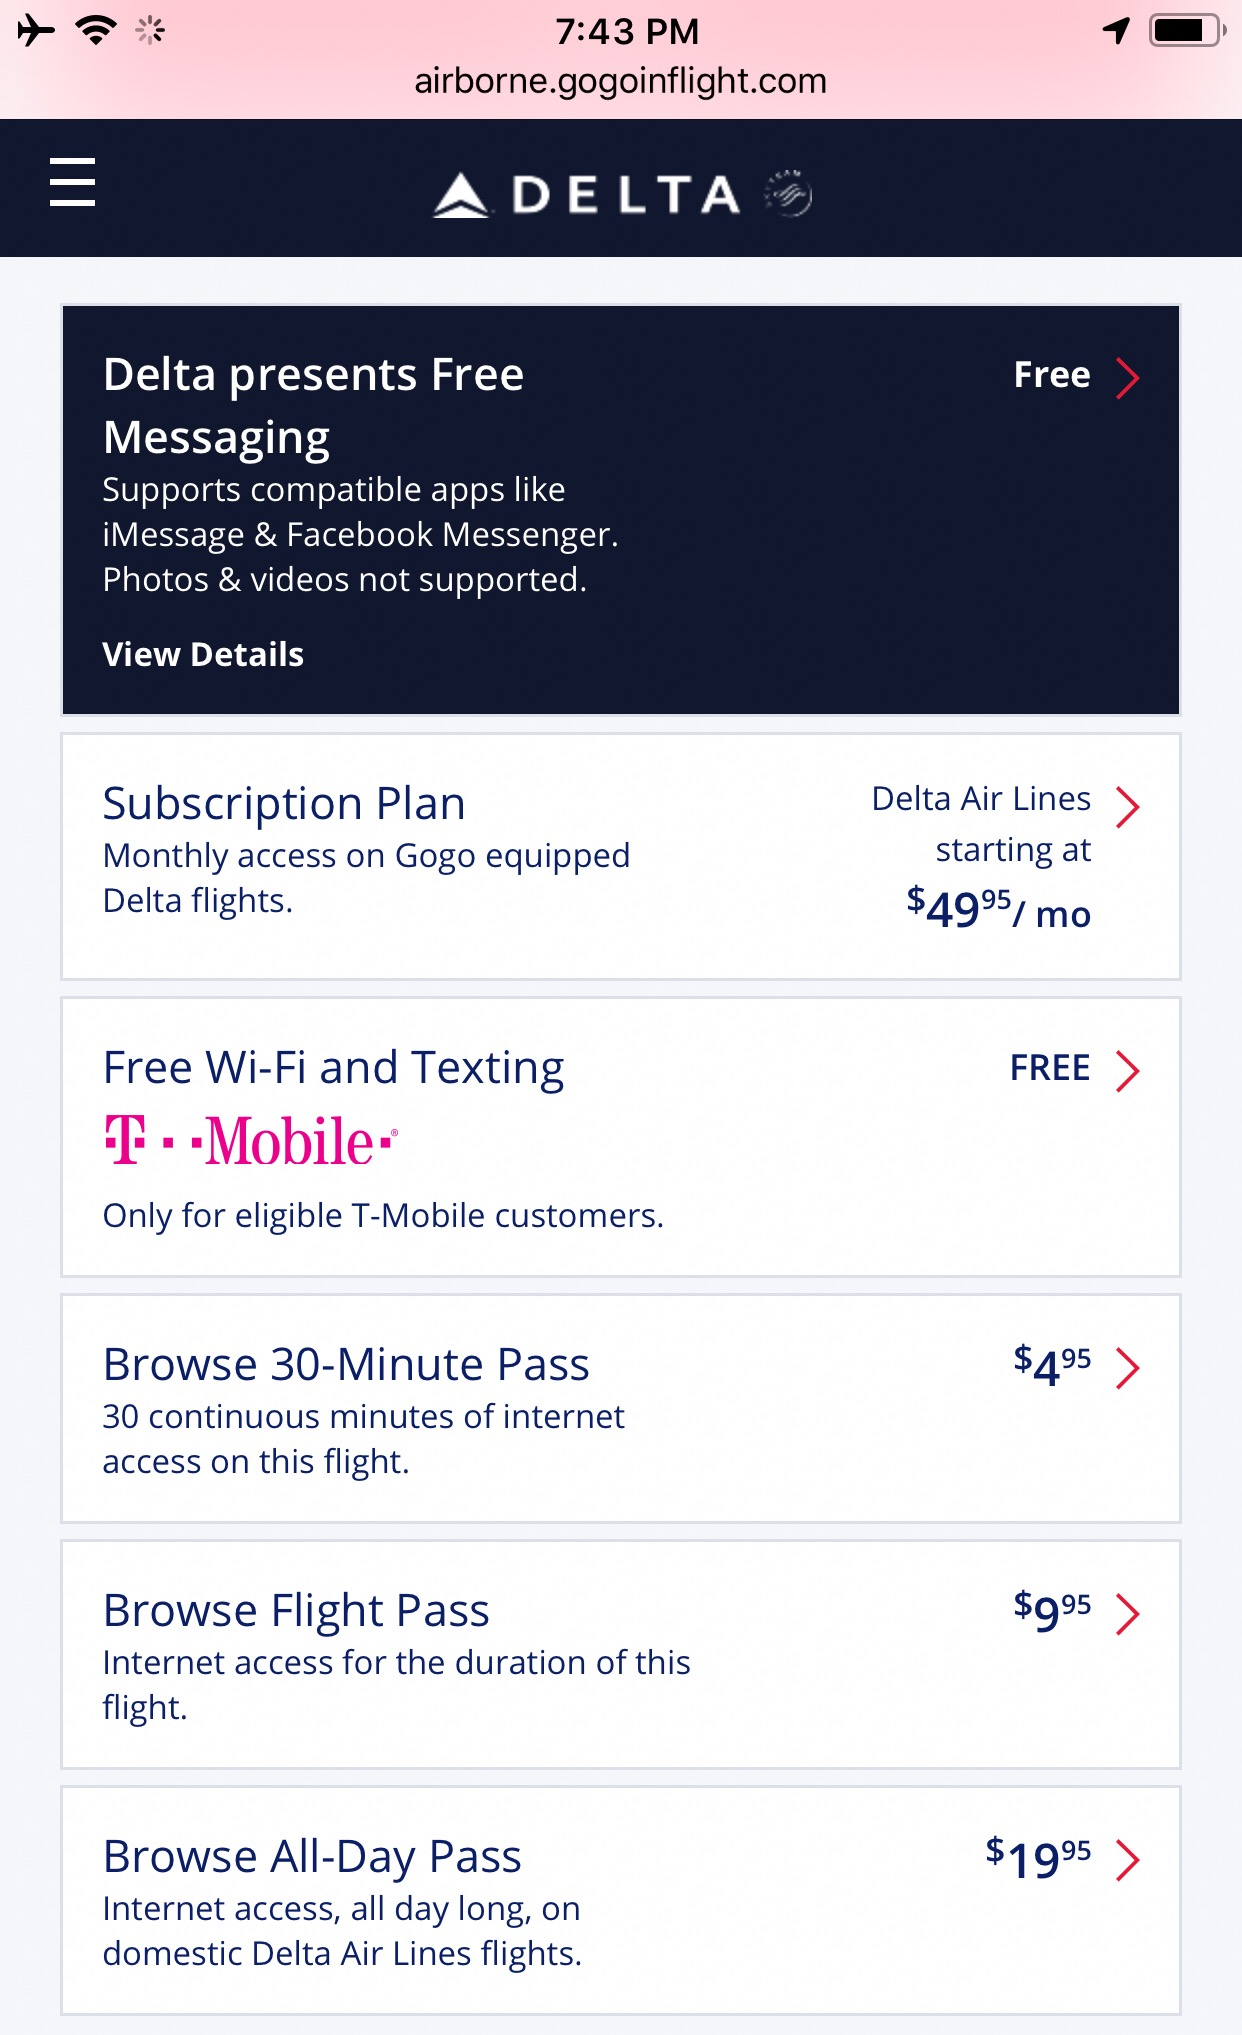 Delta currently offers free in-flight messaging and WiFi plans for purchase.